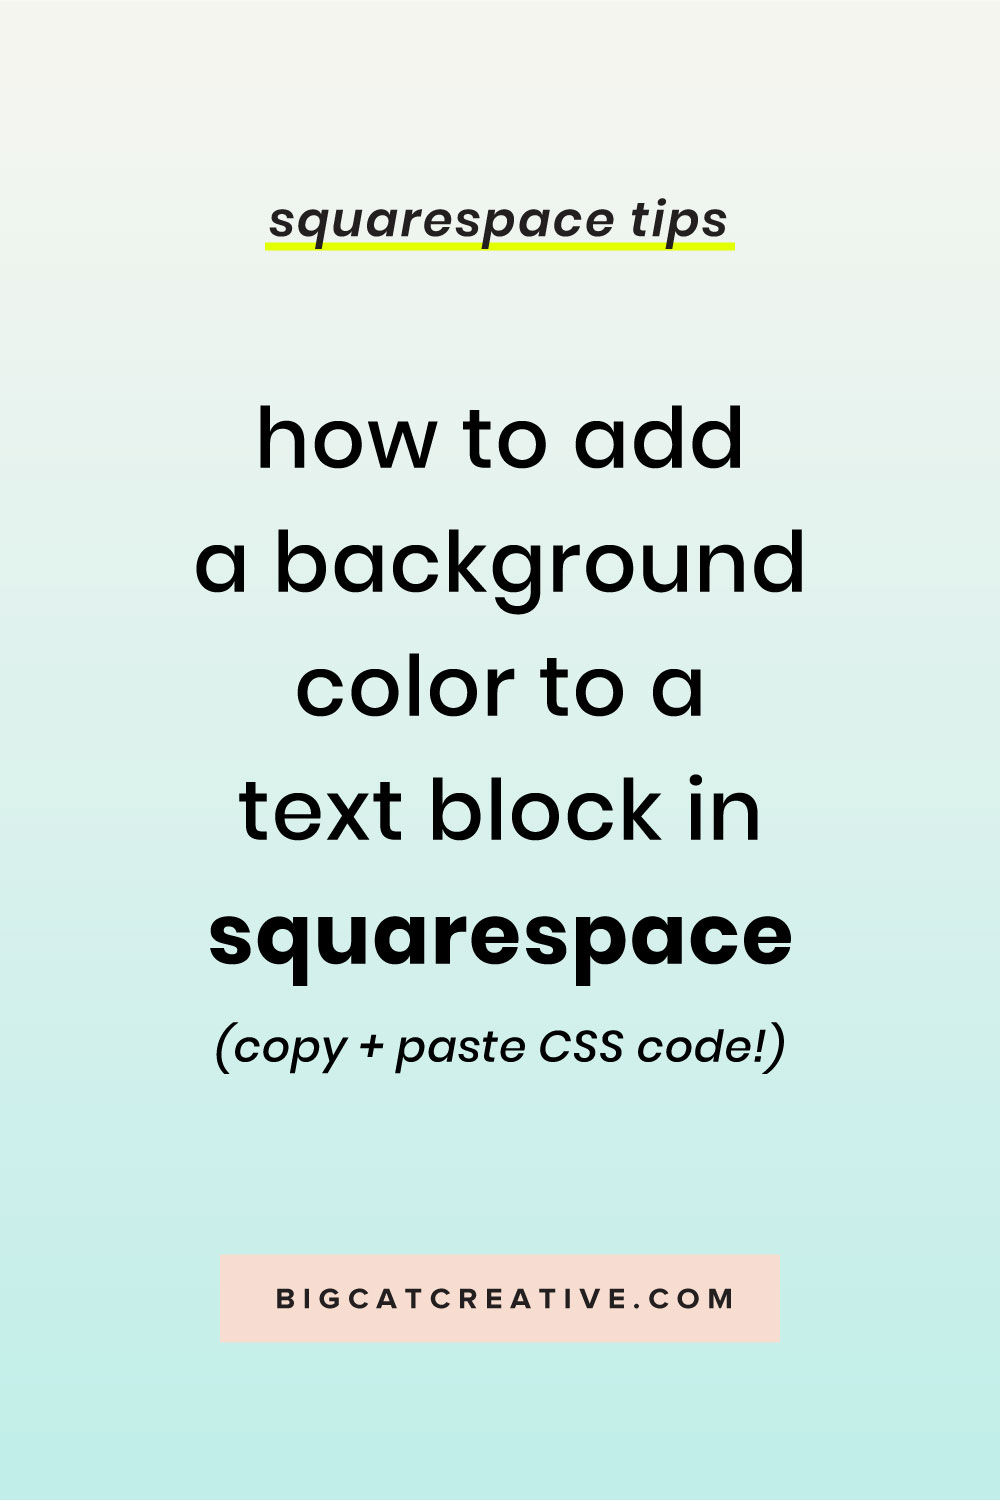 Learn how to Add a Background Color to a Text Block in Squarespace with this basic copy and paste CSS code for Squarespace #squarespace Squarespace Tips and Tutorials by Big Cat Creative